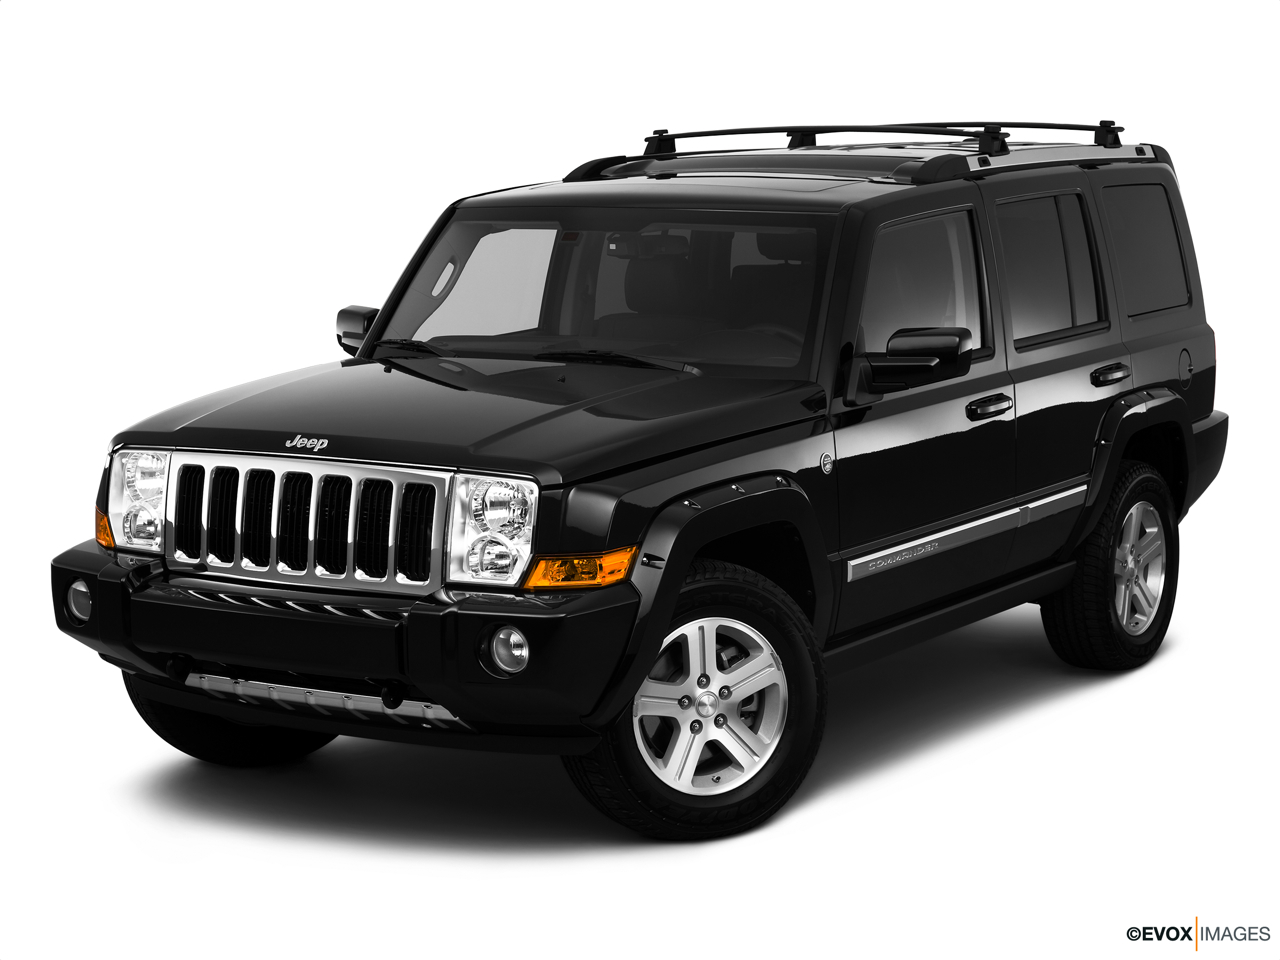 2010 Jeep Commander Limited Front angle view.